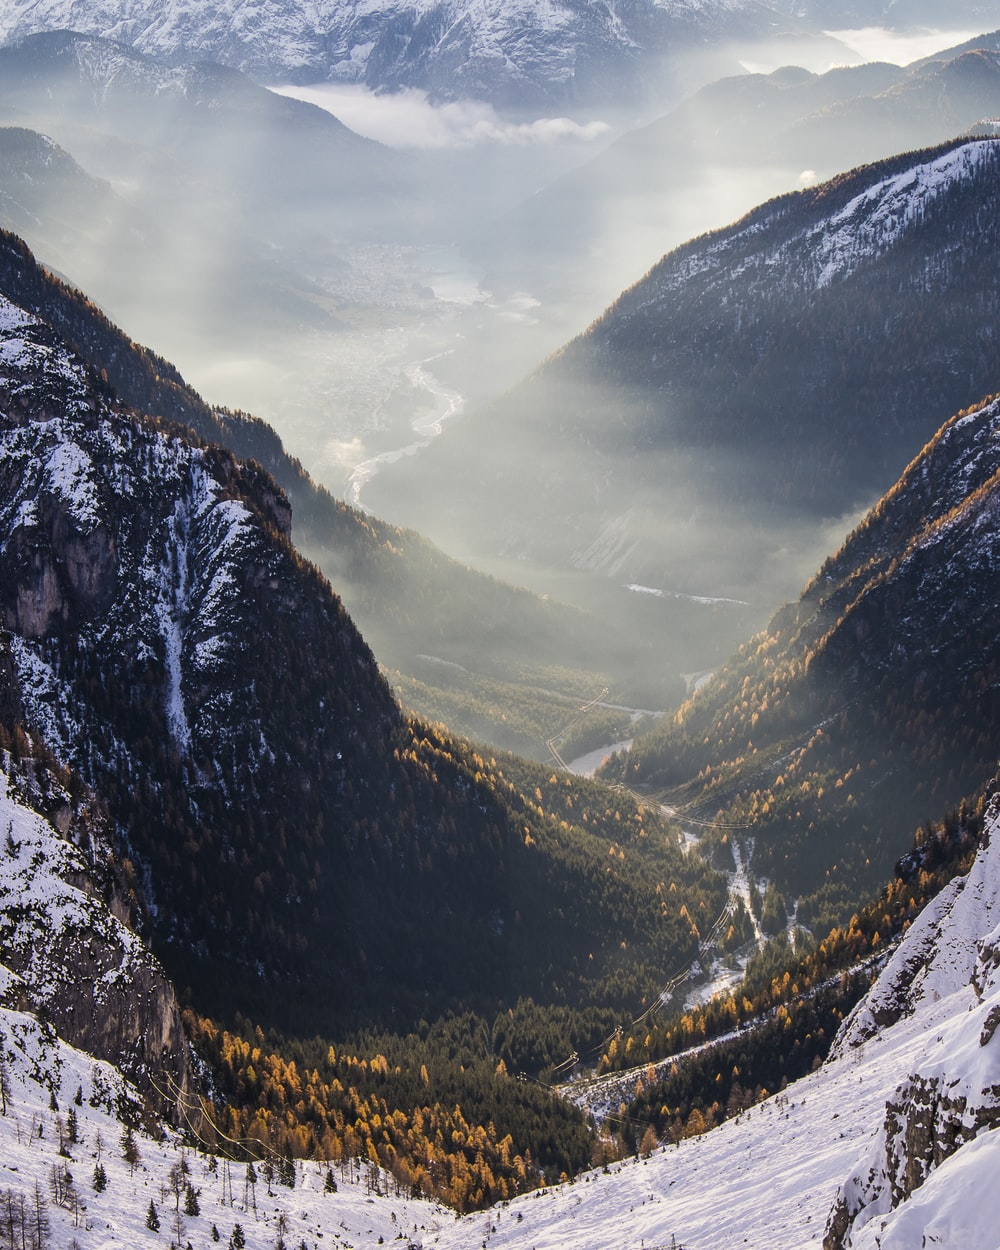 tree-covered valley between snow-capped mountains aerial photo